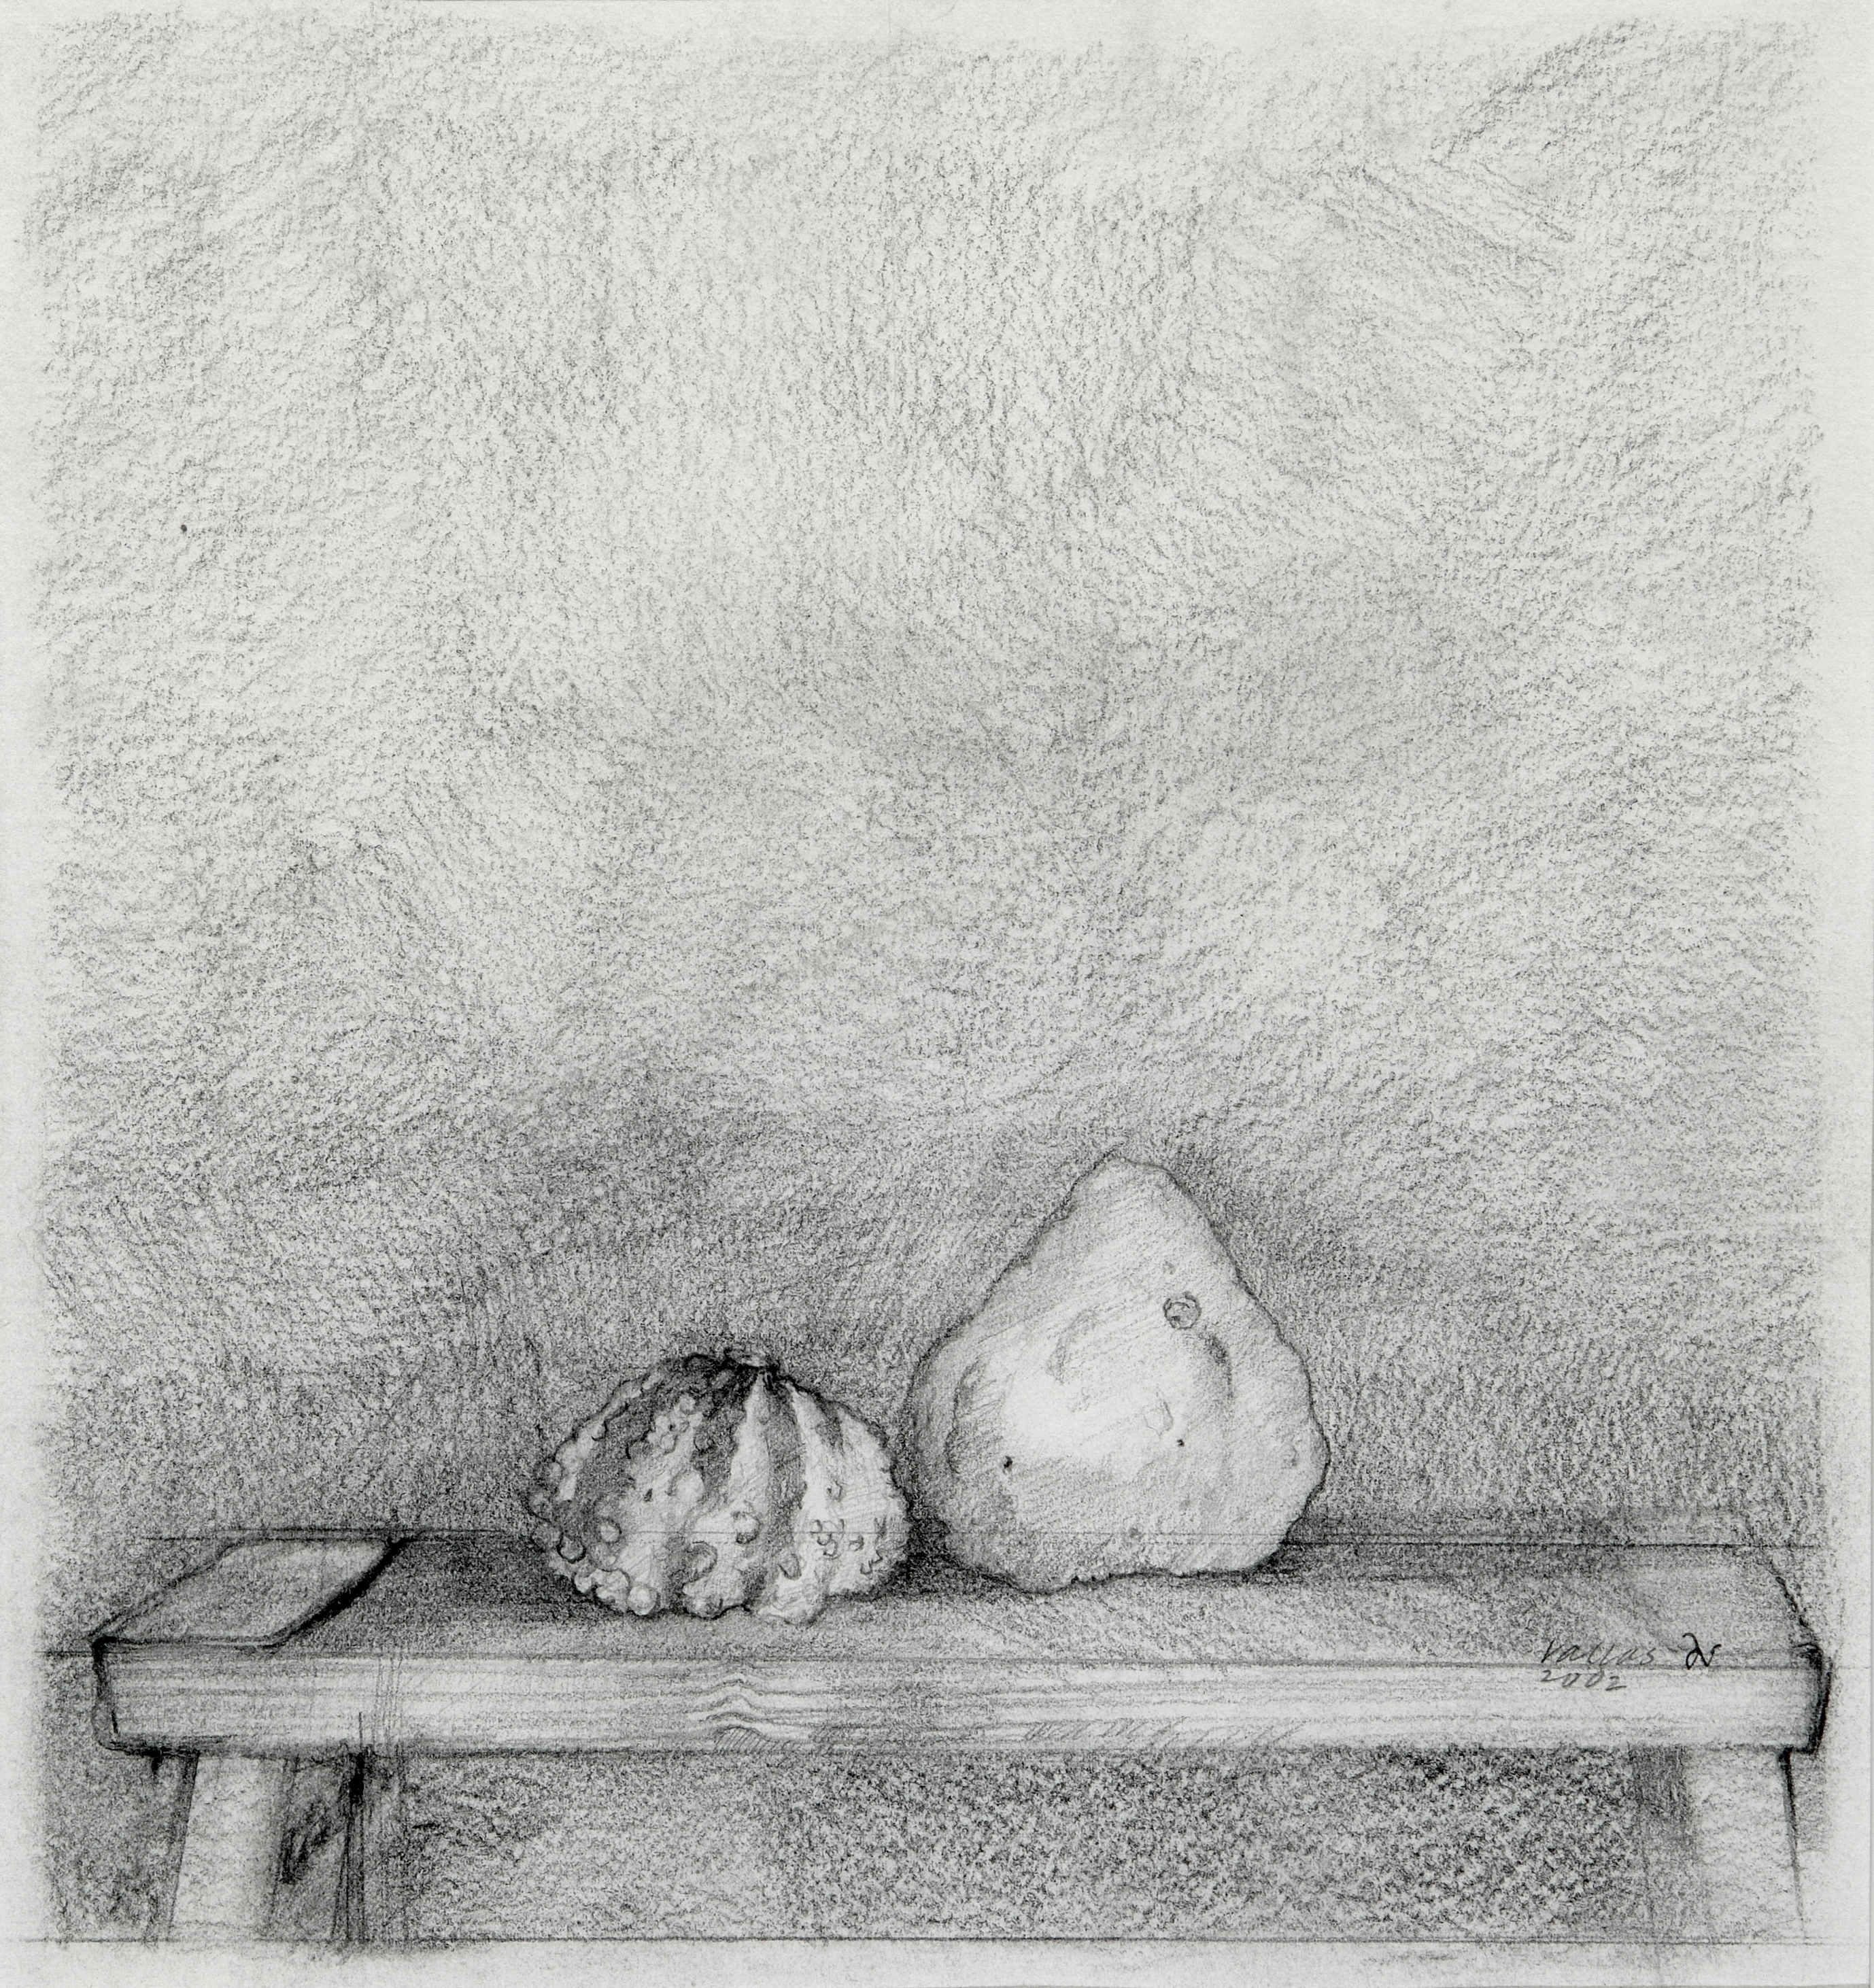 Two Gourds on a Bench